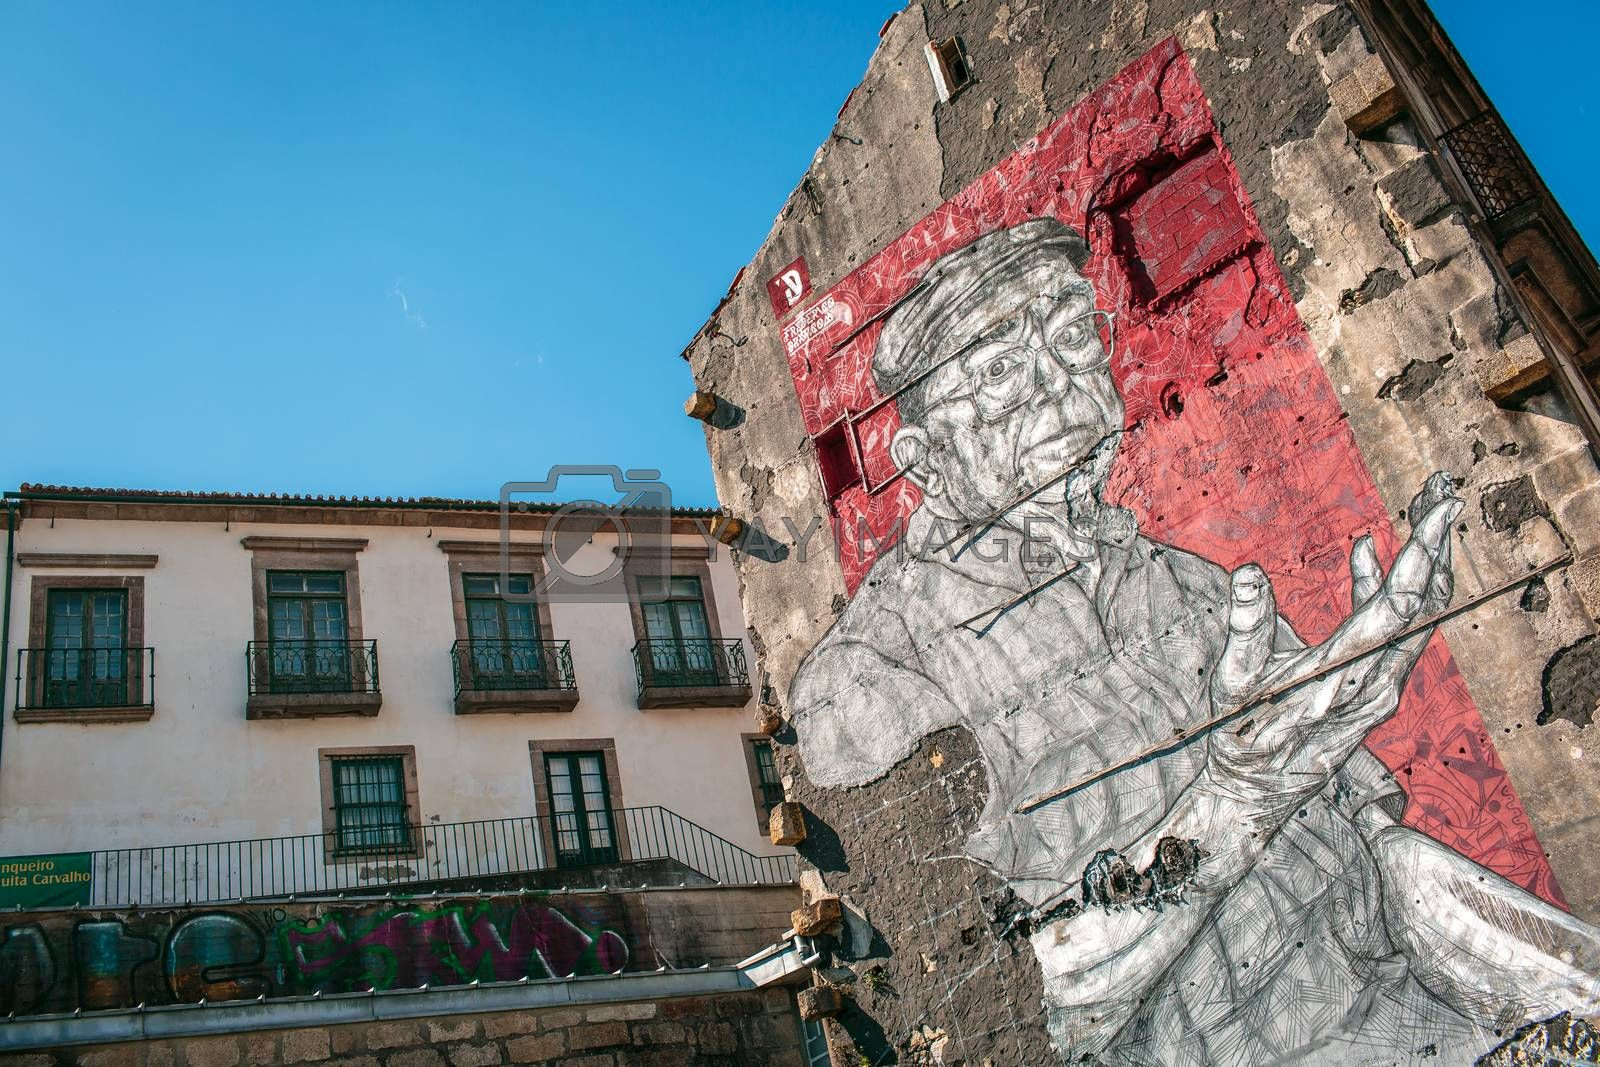 Murales on a building in the city of Porto, Portugal